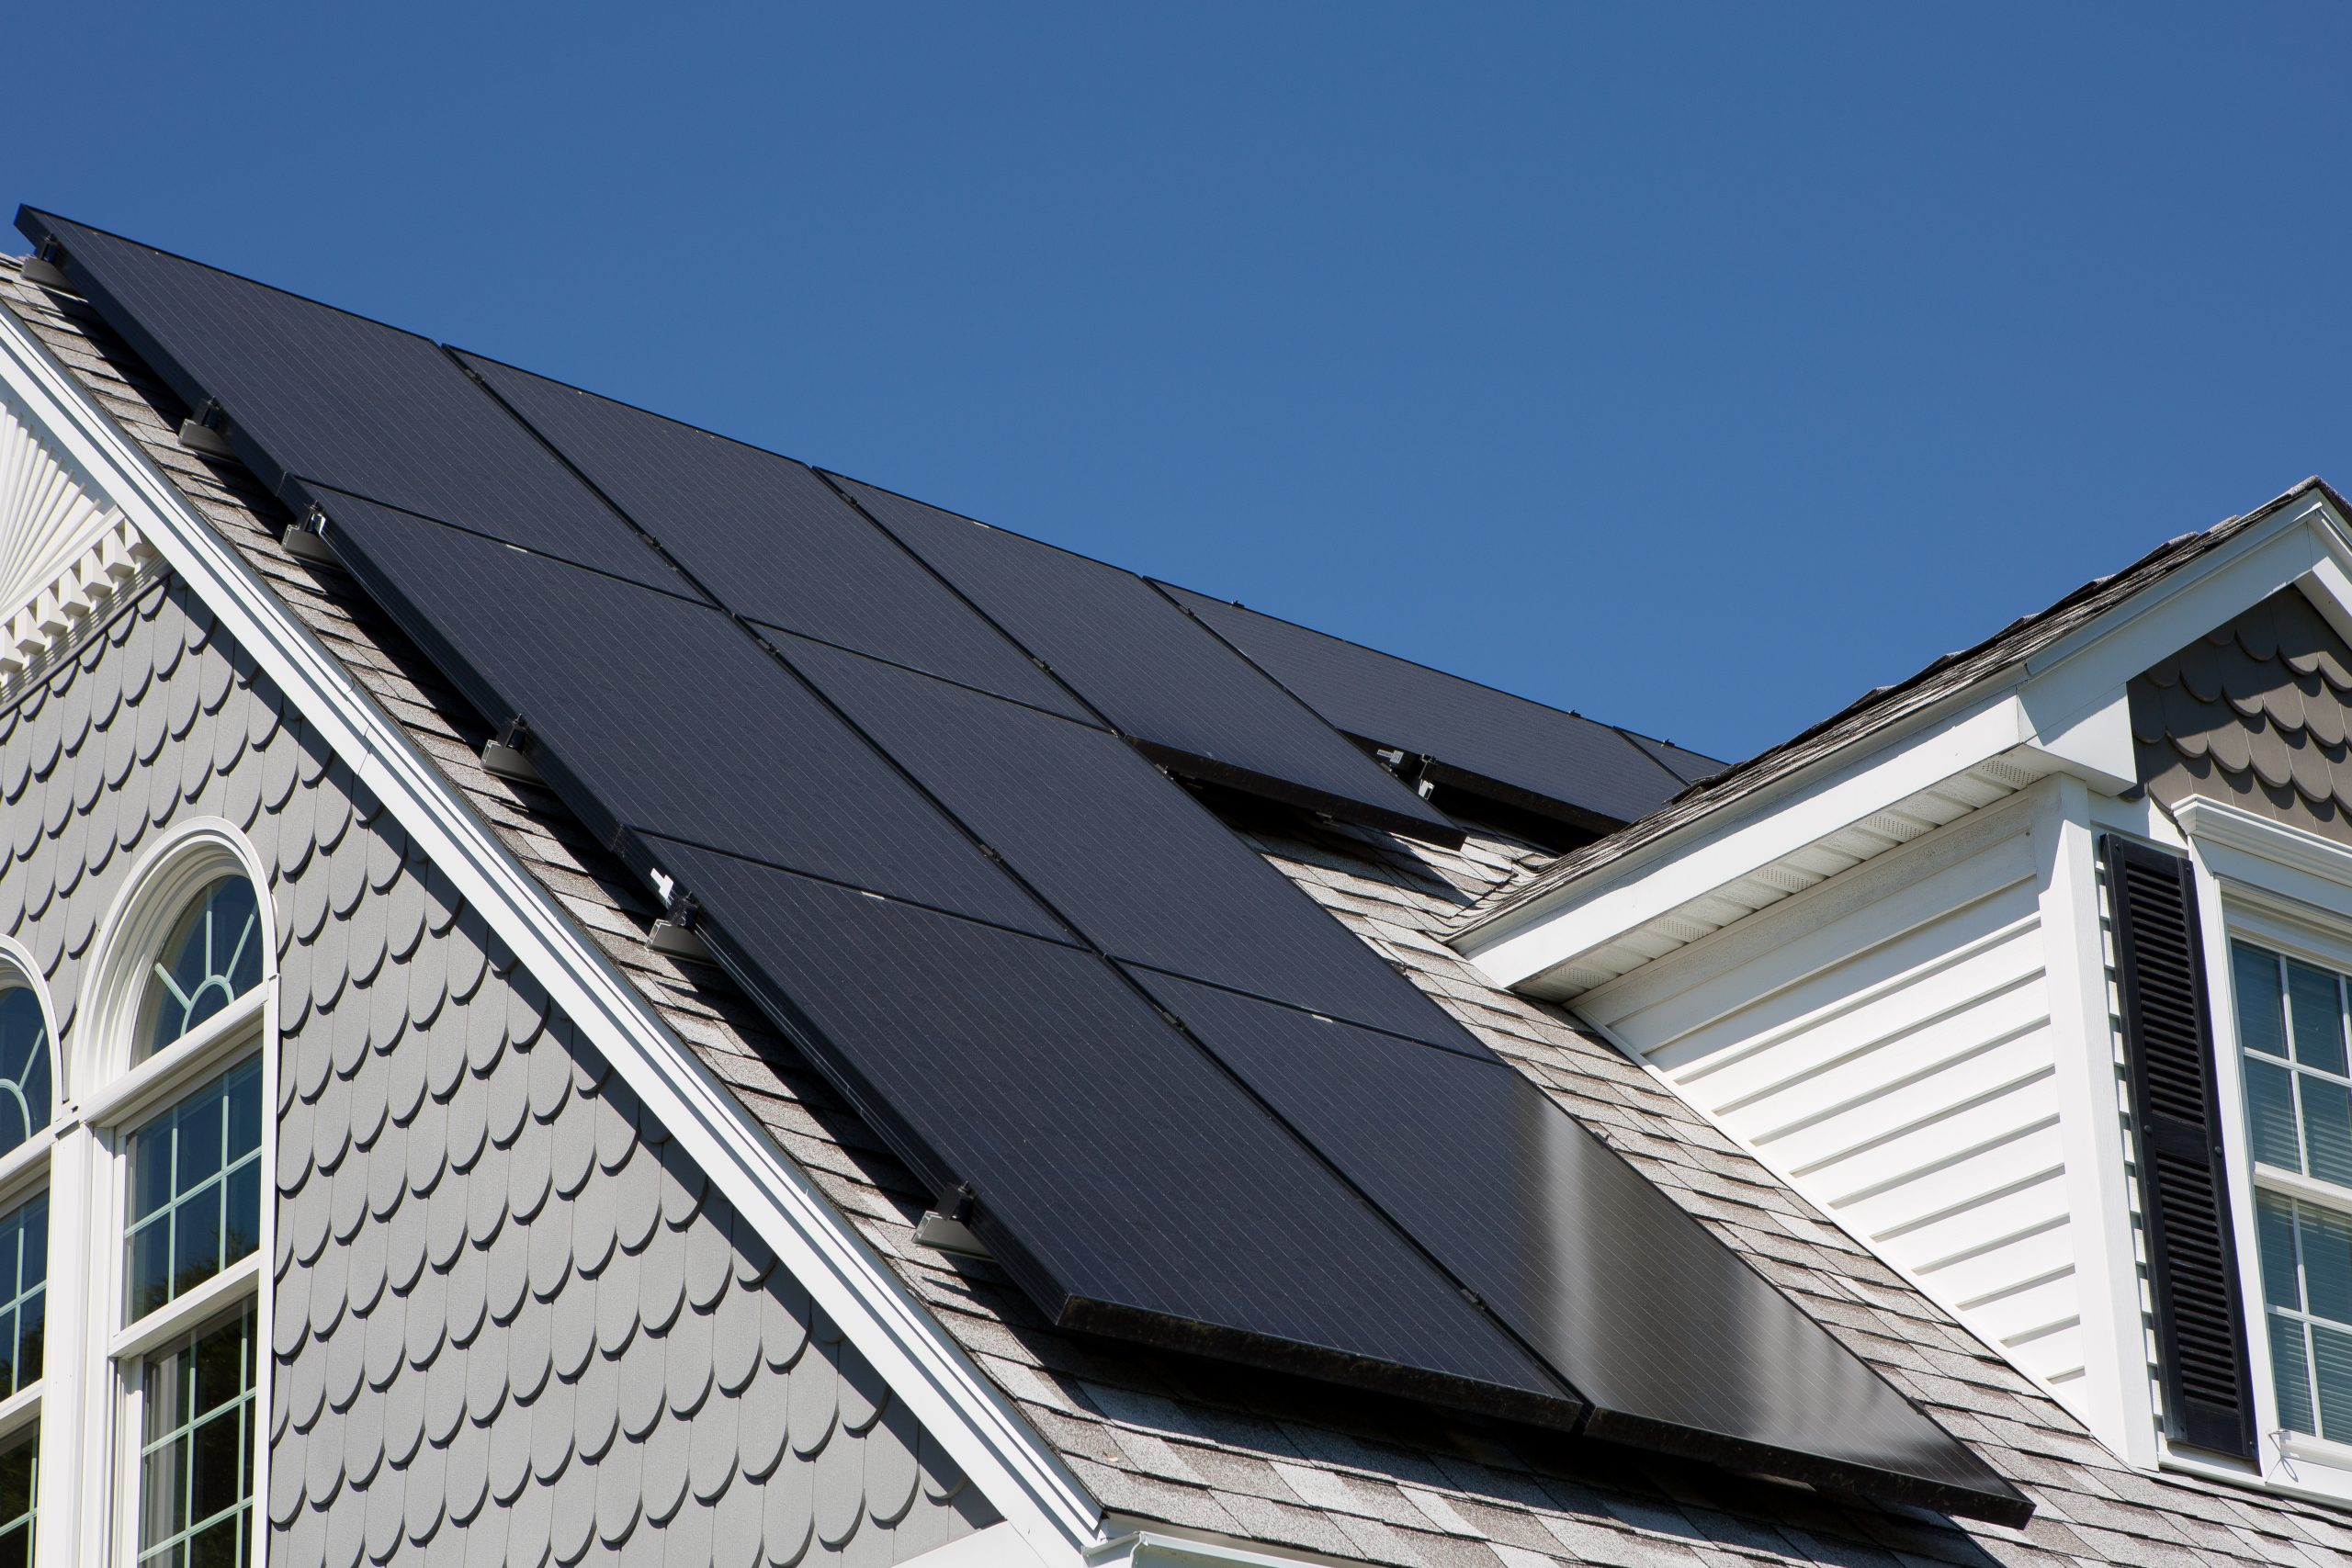 Going Solar with Momentum: Panels, Storage and More